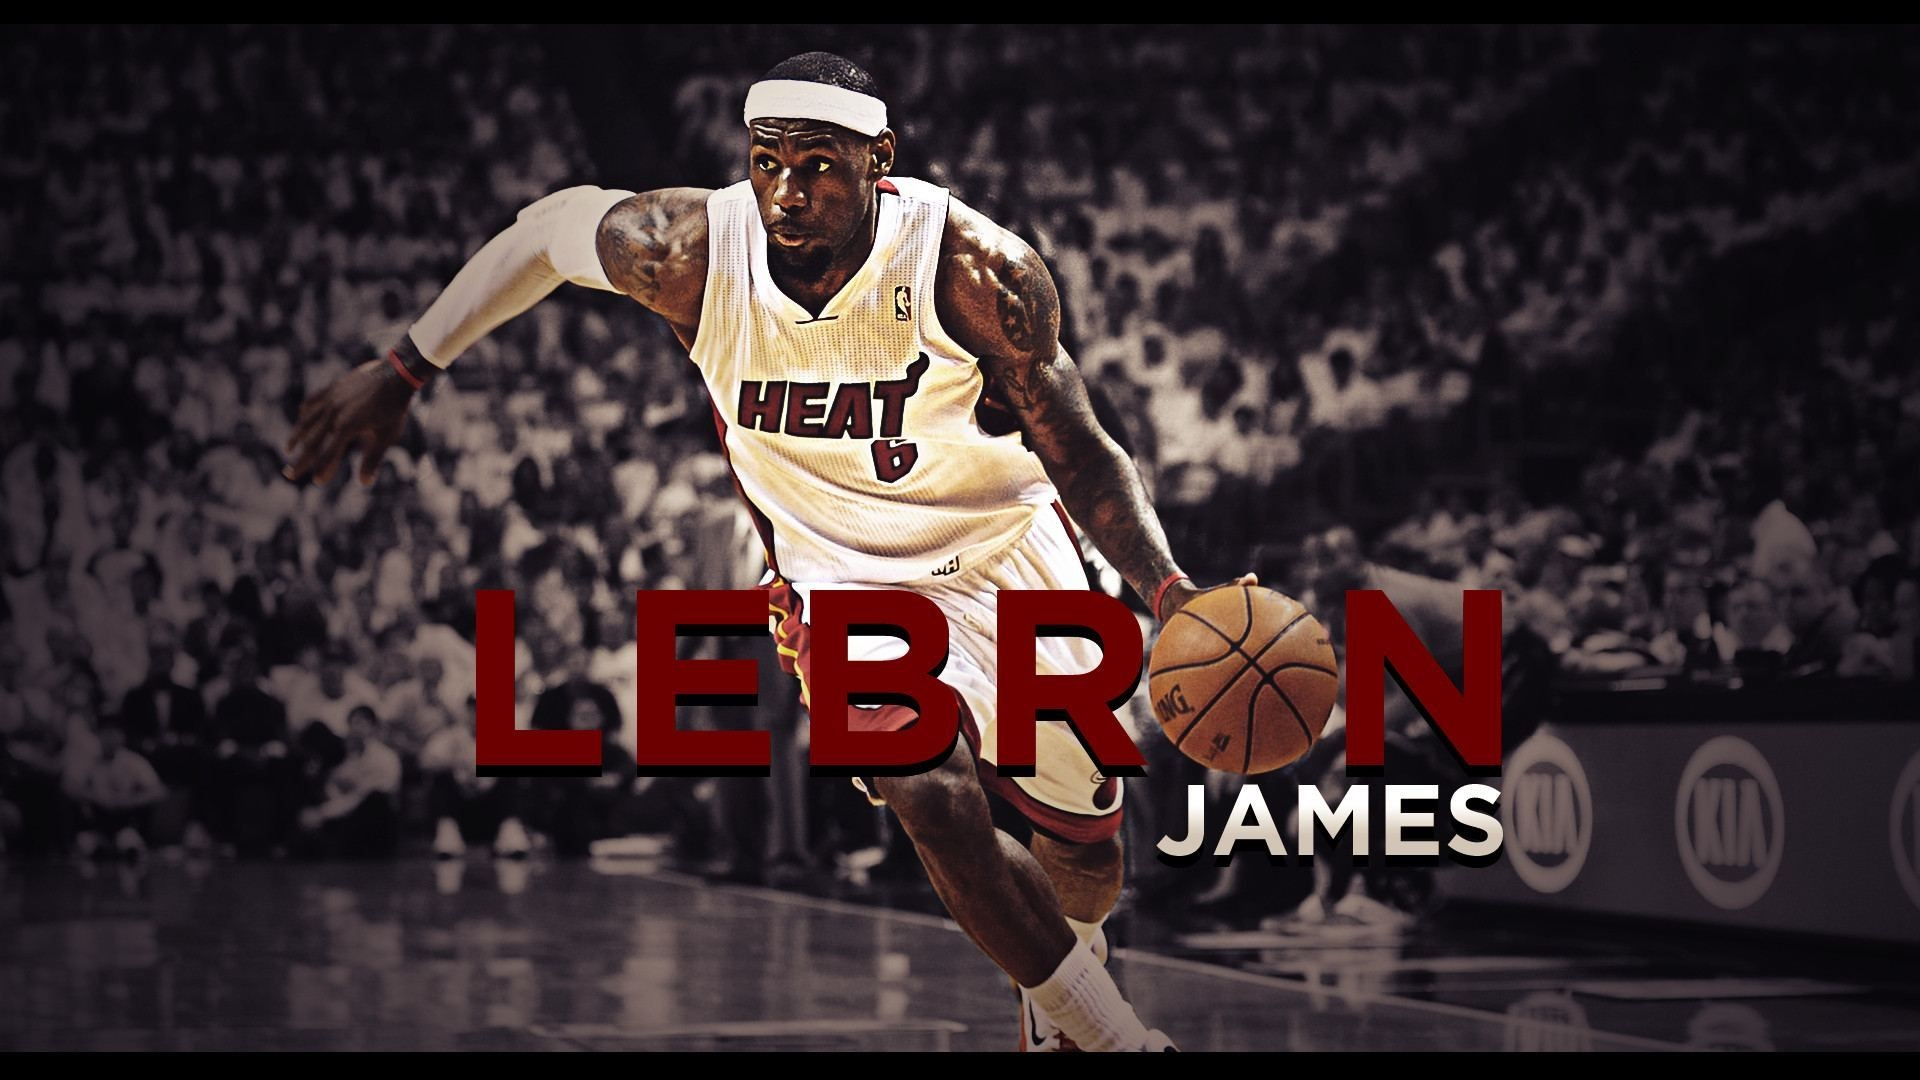 1920x1080 LeBron James Wallpaper Iphone - Best Wallpaper HD